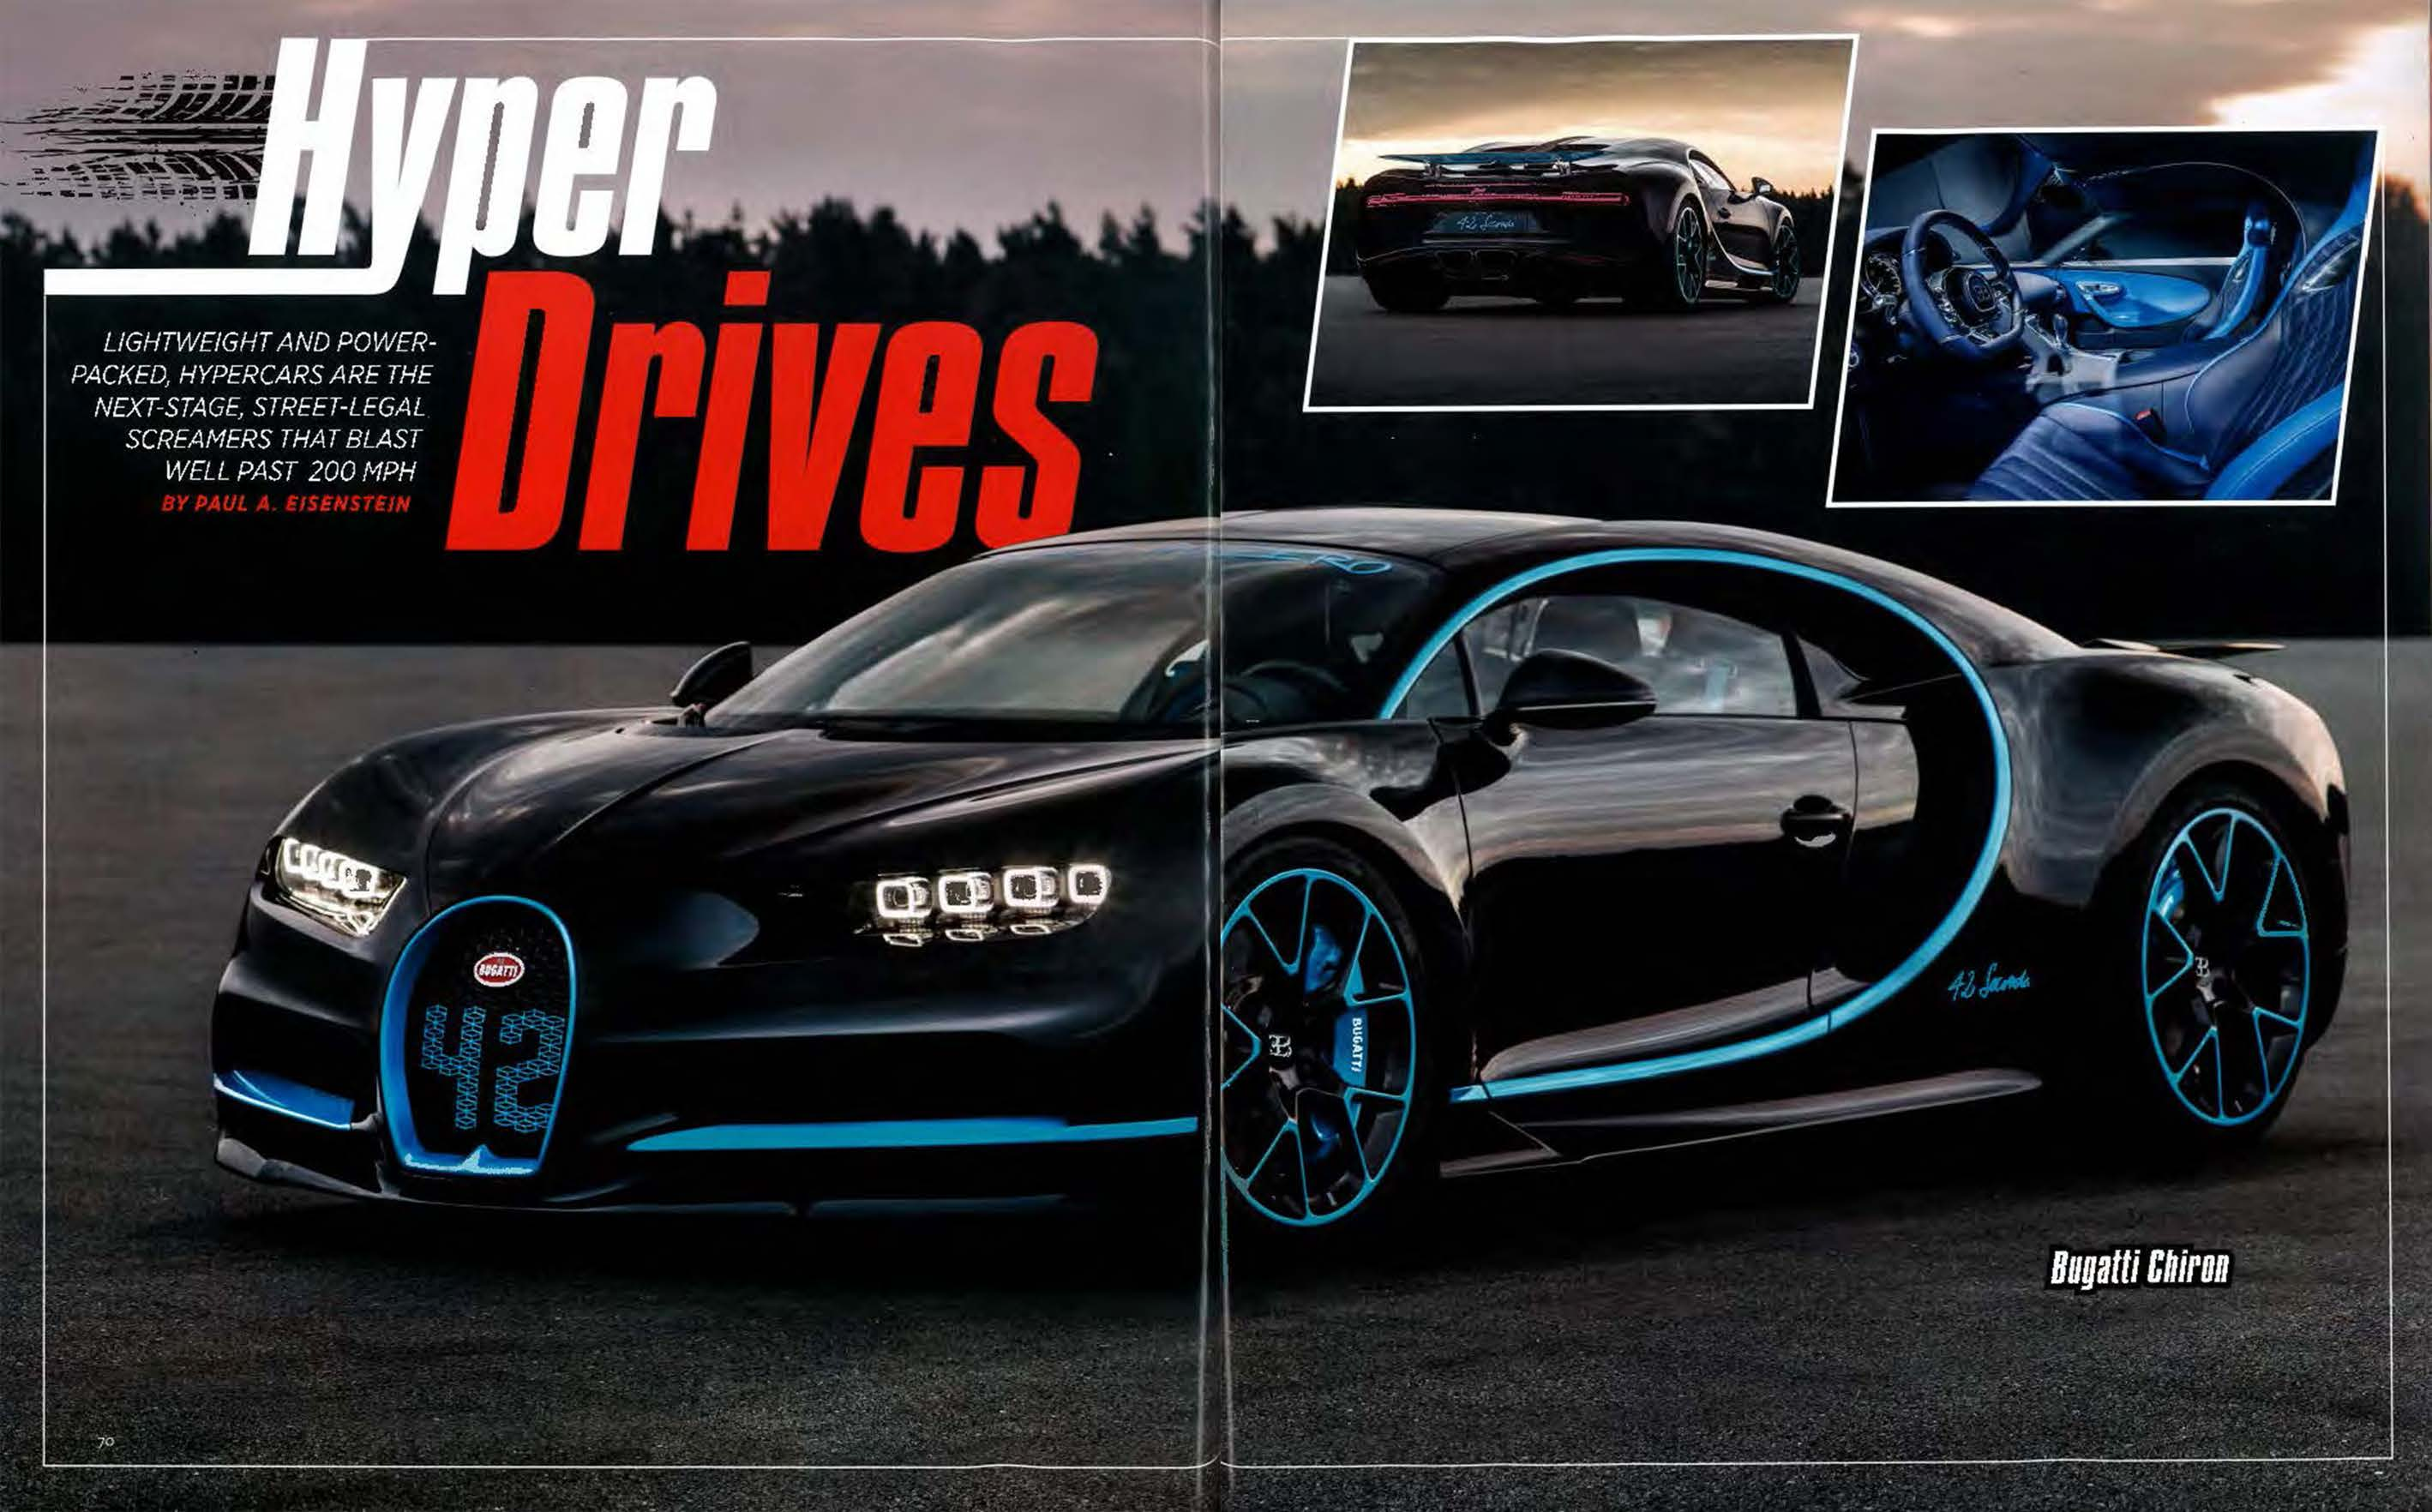 News Hennessey Venom Gt Consumer Electronics Vehicle Gps Car Video No Wonder Its Named For The Most Powerful Tornado On Fujita Scale A Snippet From This Months Issue Of Cigar Aficionado